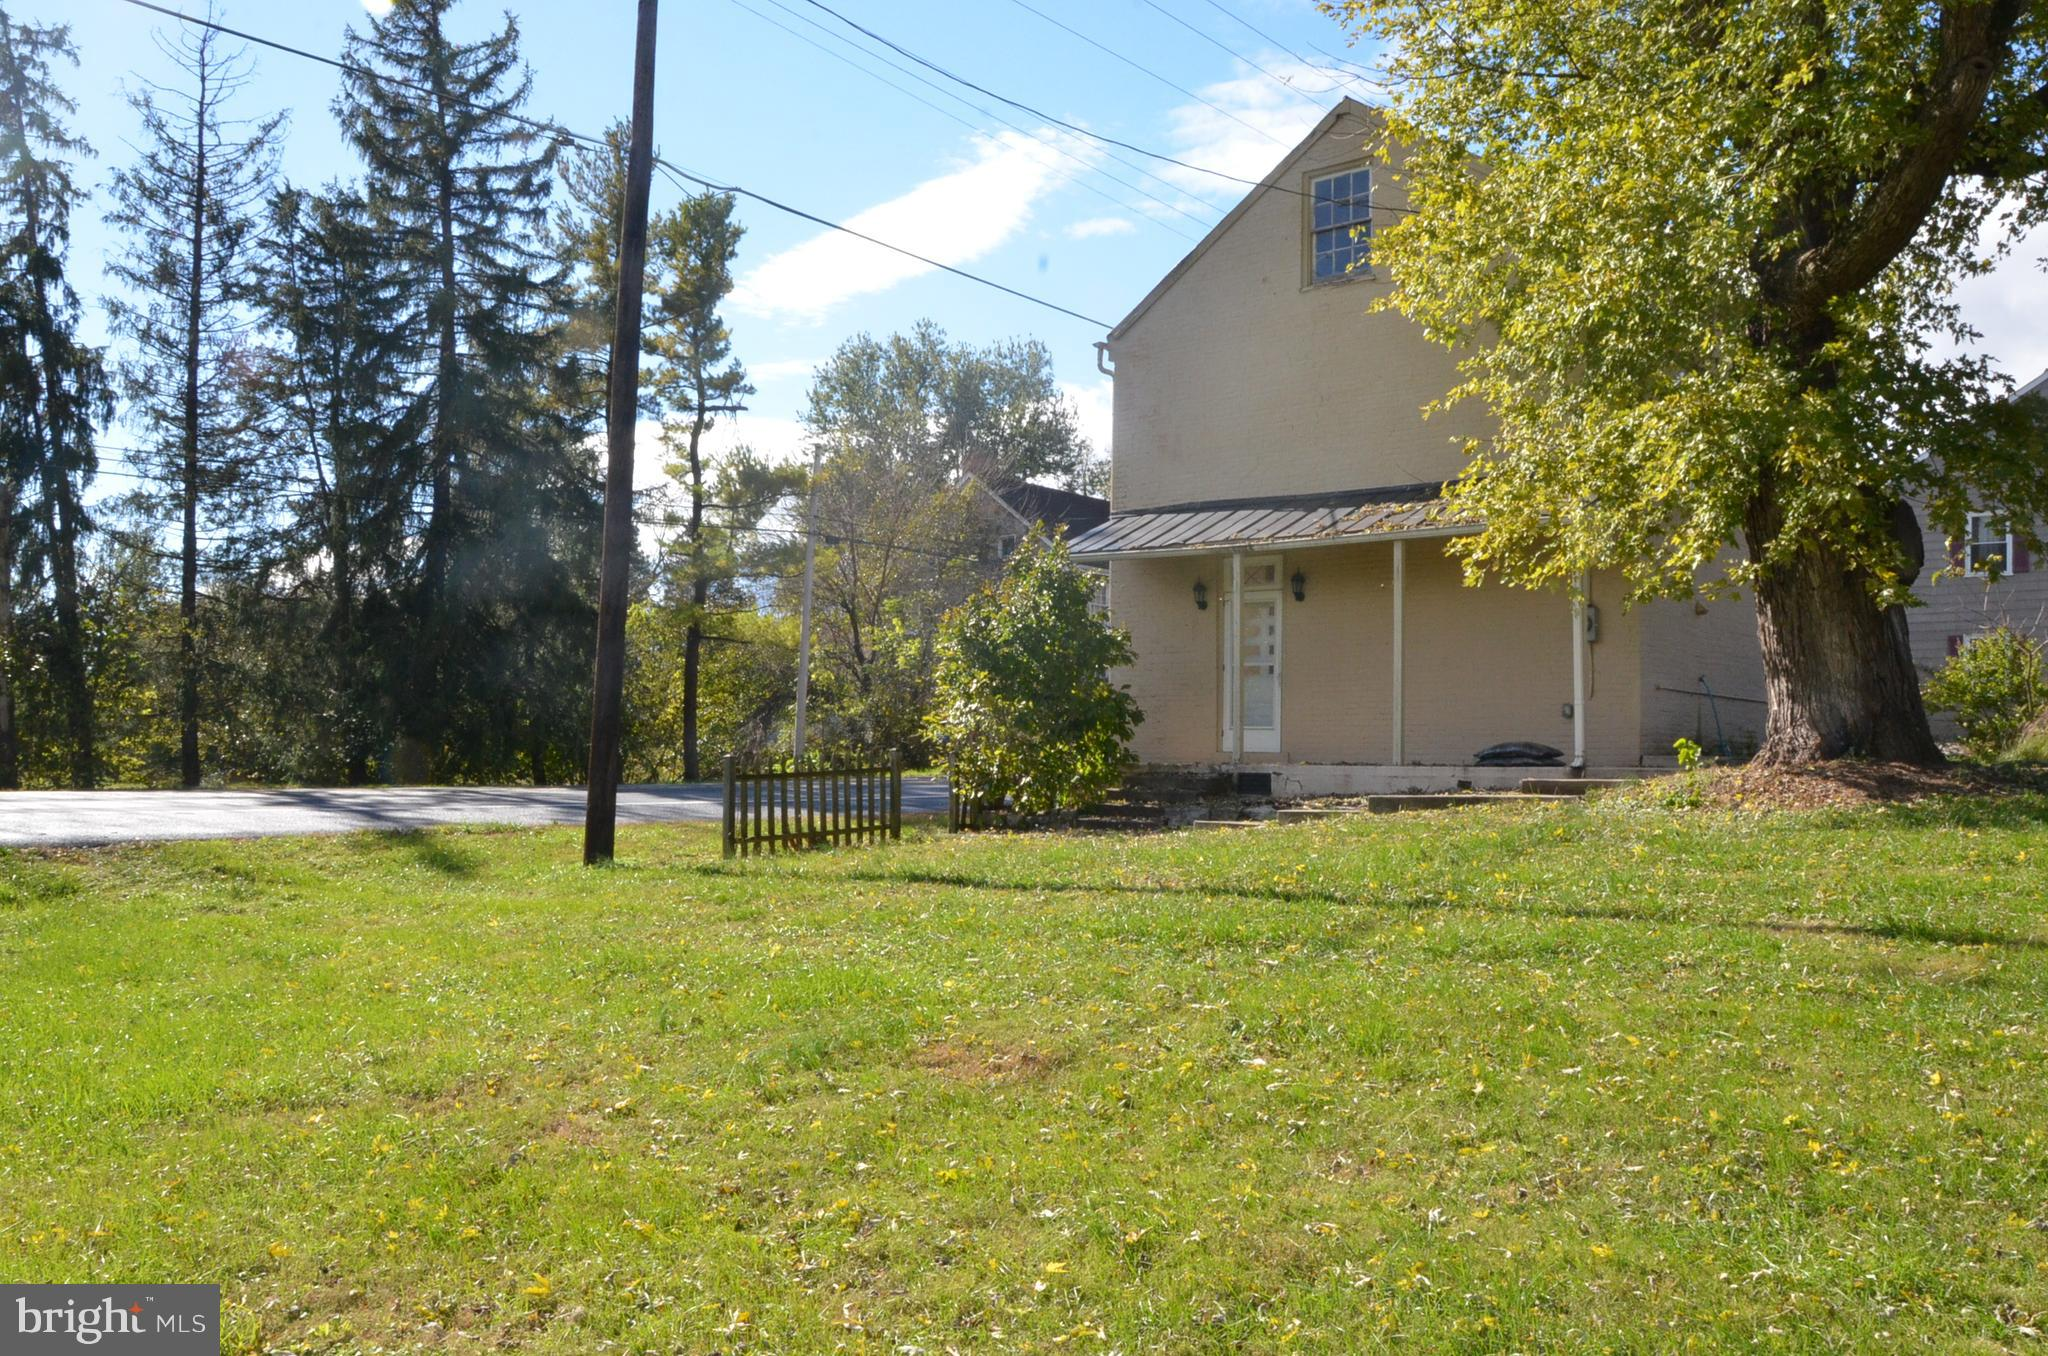 13800 NATIONAL PIKE, CLEAR SPRING, MD 21722